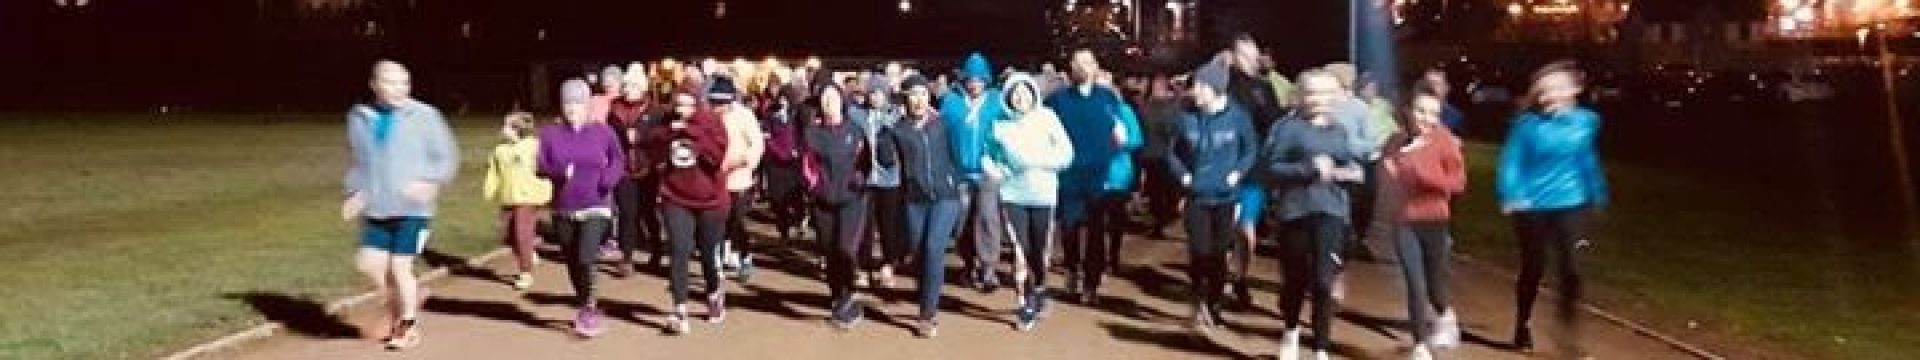 Birmingham League Cross Country 2 @ Stratford upon Avon -7/12/2019